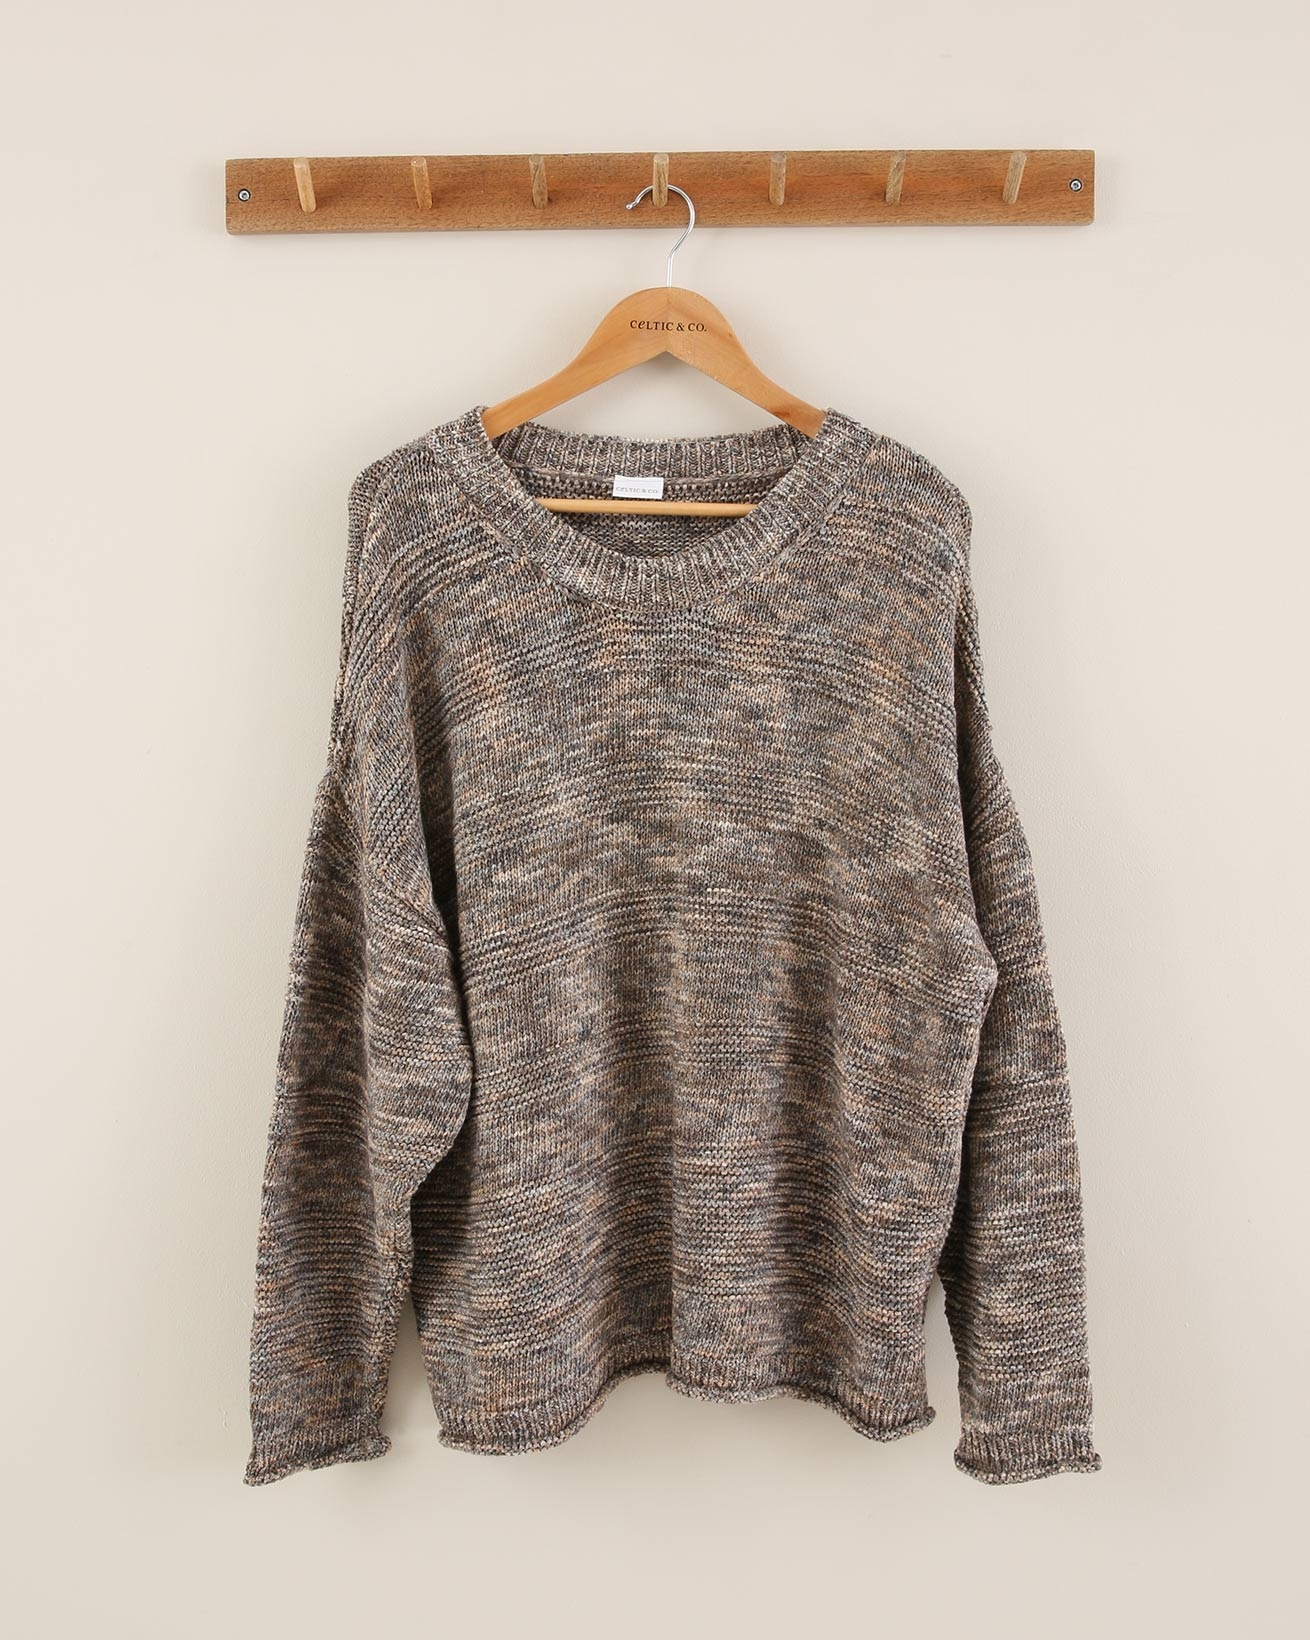 Space Dye Cotton Jumper - Size Small - Brown Mix - 1871